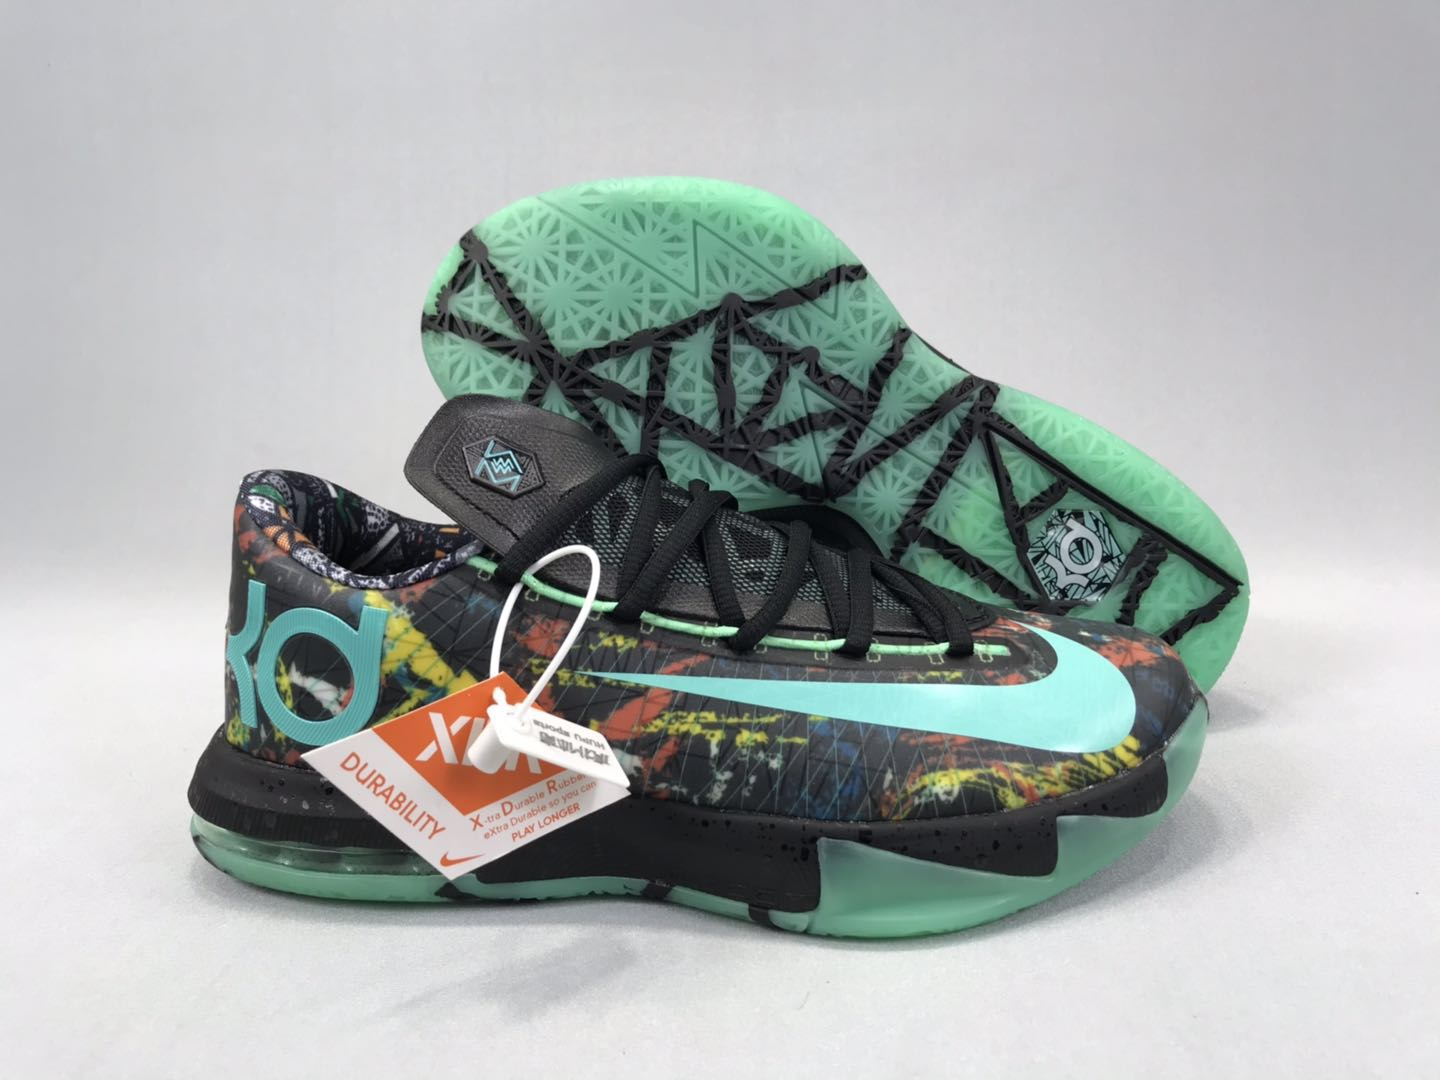 Nike KD 6 All Star Shoes